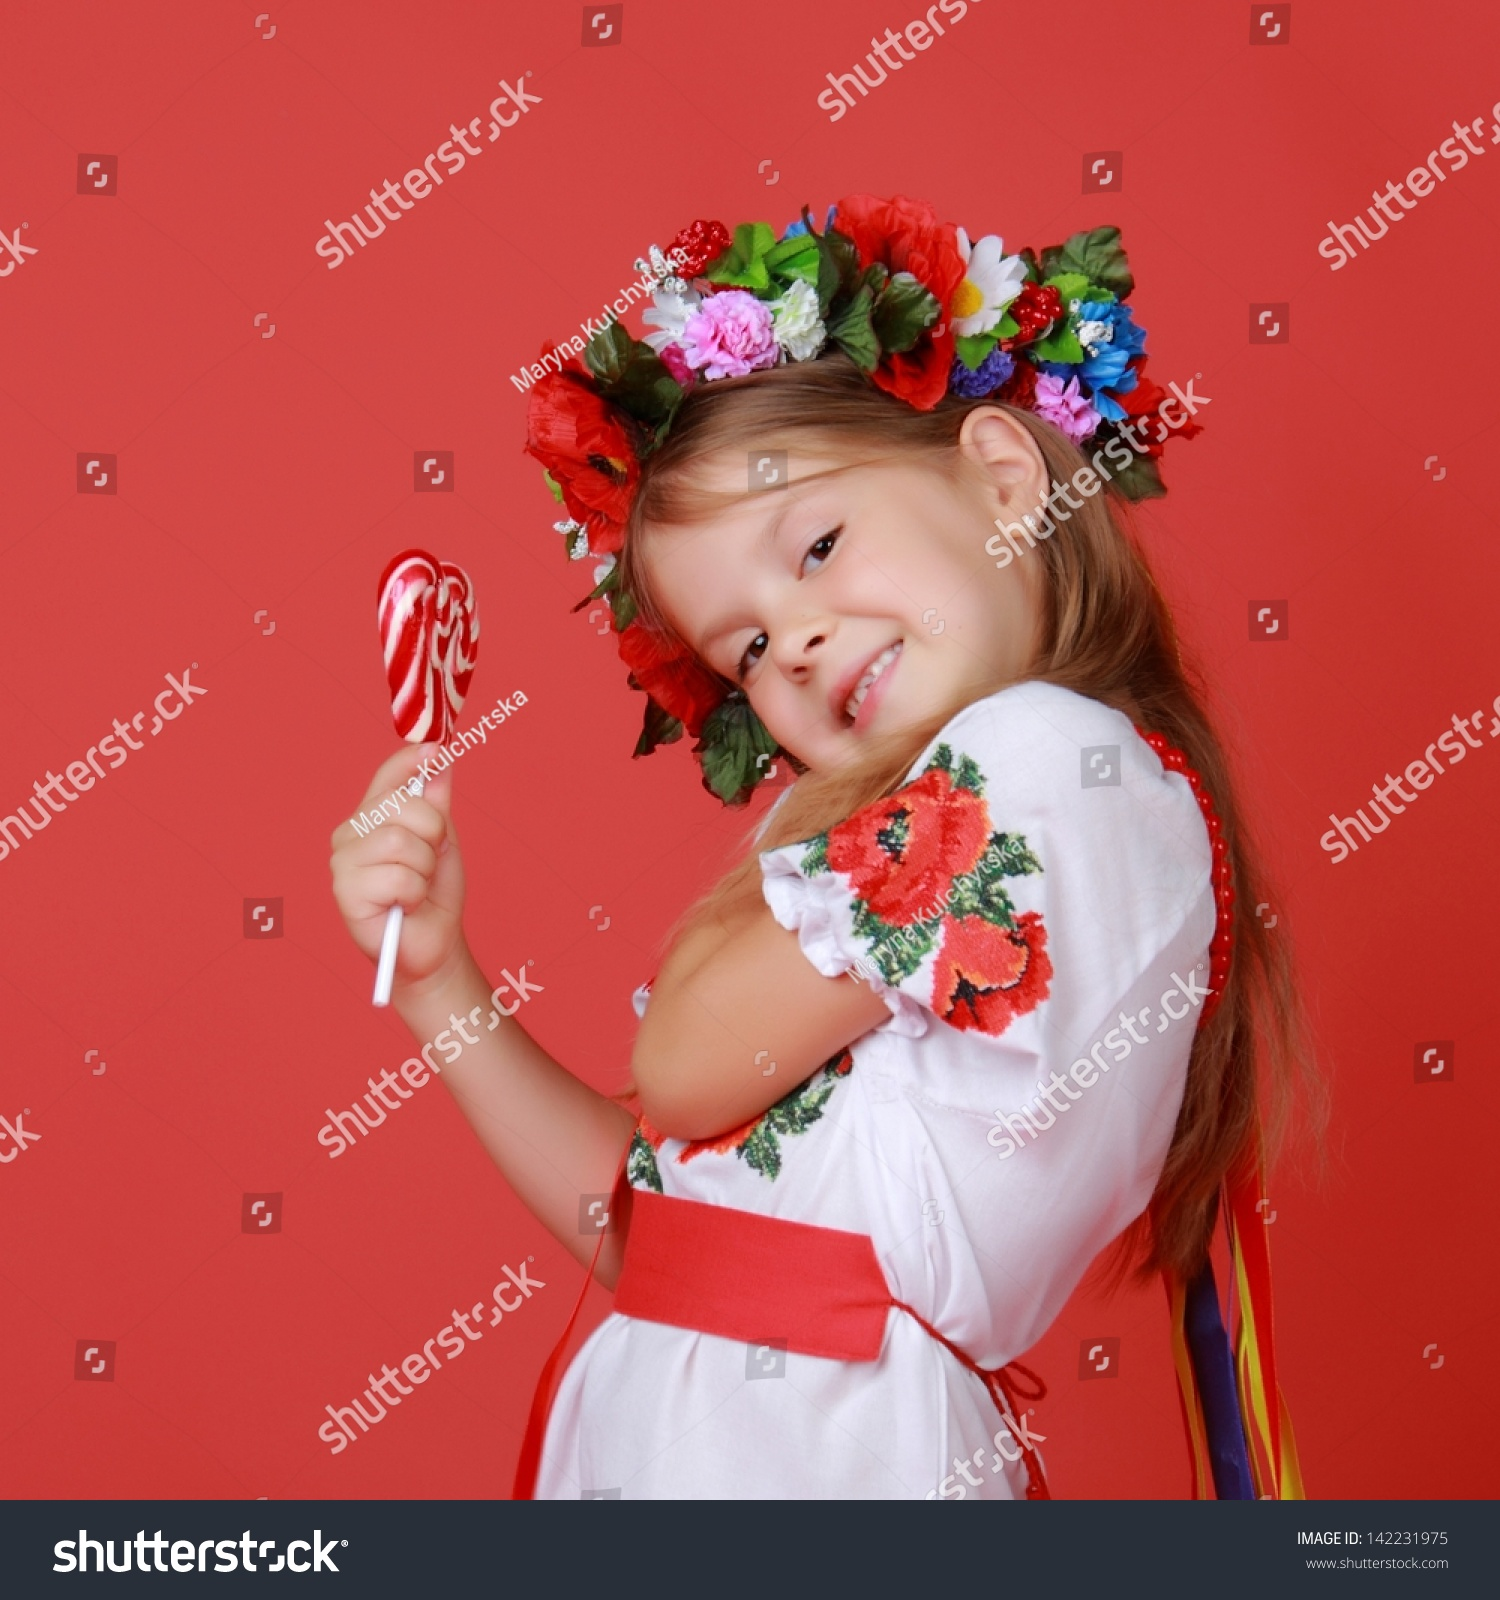 lolly model Kid in traditional ukrainian costume with sweet lolly pop as a heart symbol  /lovely little